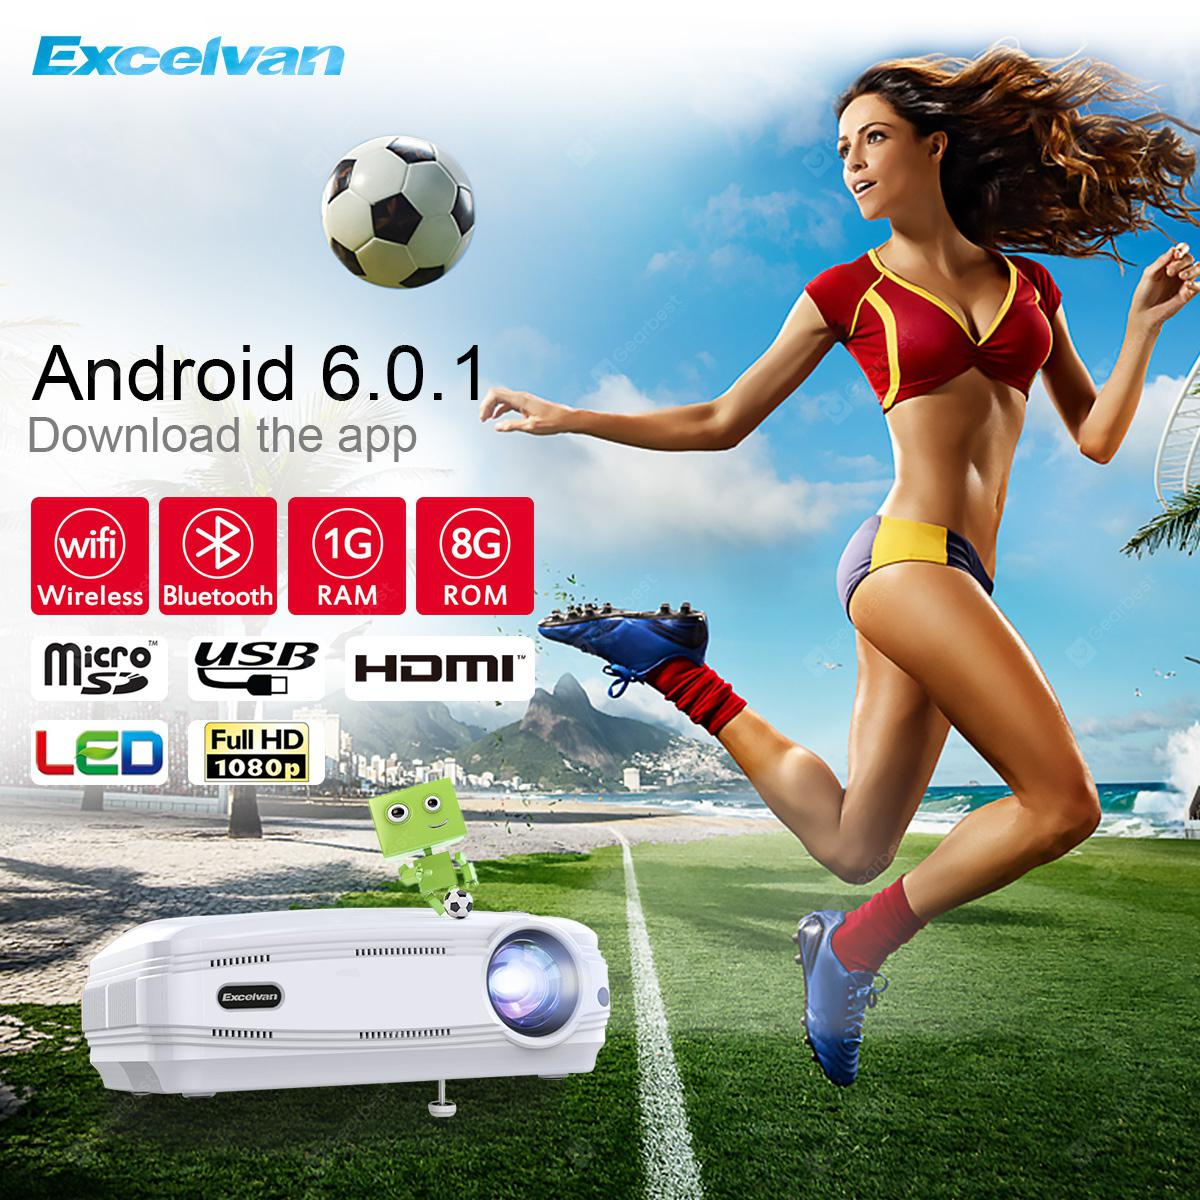 Excelvan BL-59 6.0.1 3200 Android lumnov * 1280 768 200 Inch Multimedia Projector Podpora Red & Blue 3 1080P WiFi + Bluetooth 1G 8G ATV Outdoor Film igra za domači kino - EU WHITE